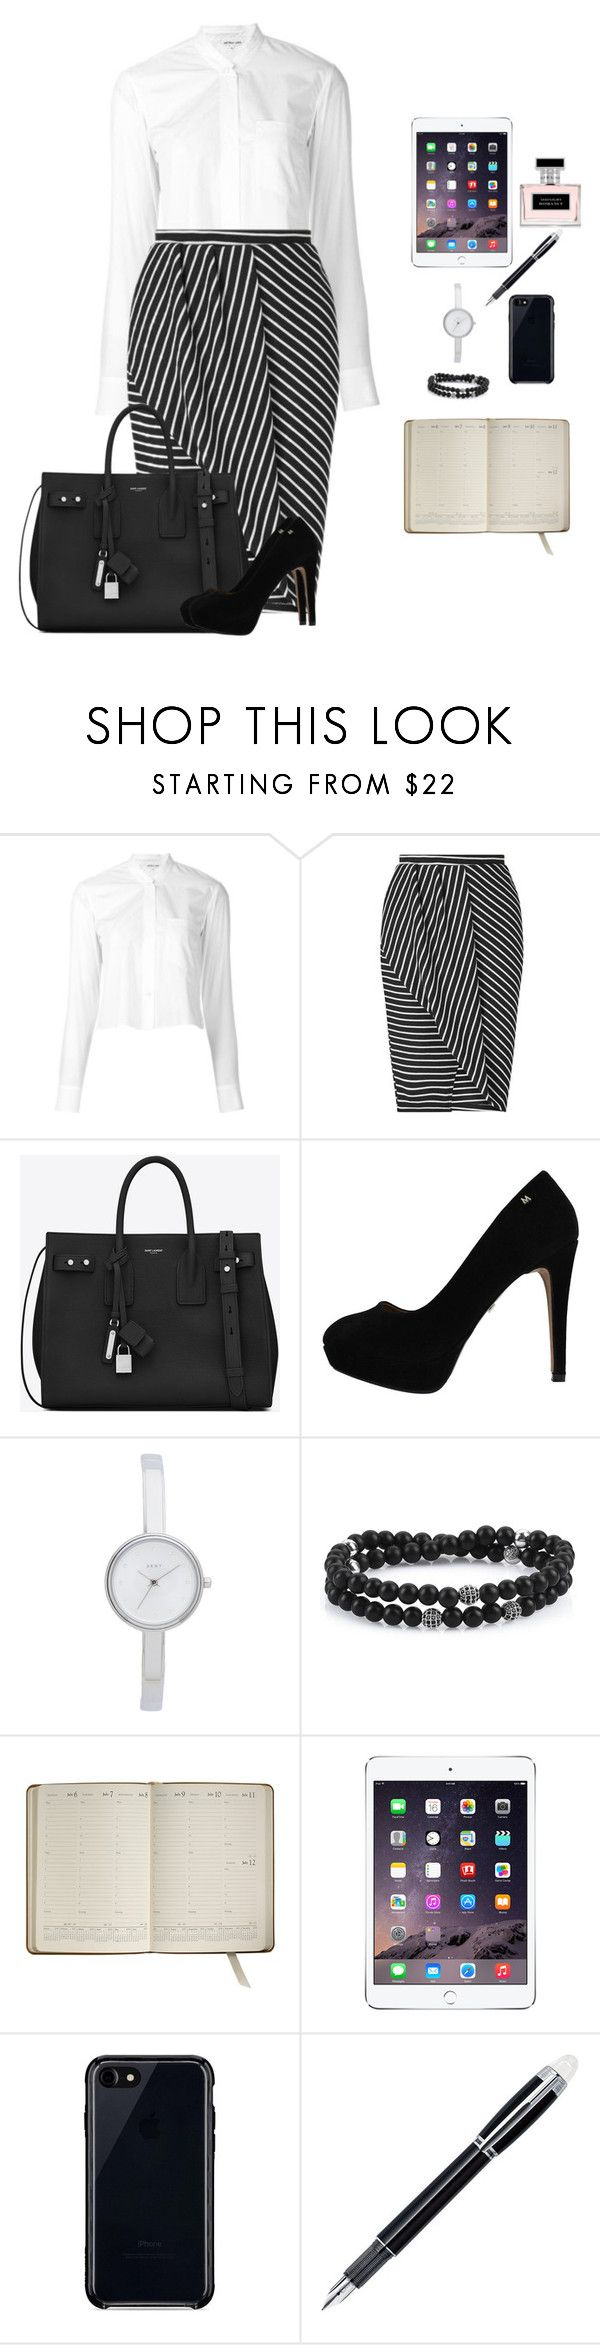 """Business look"" by monika1555 on Polyvore featuring Helmut Lang, Miss Selfridge, Yves Saint Laurent, DKNY, Graphic Image, Belkin, Montblanc and Ralph Lauren"